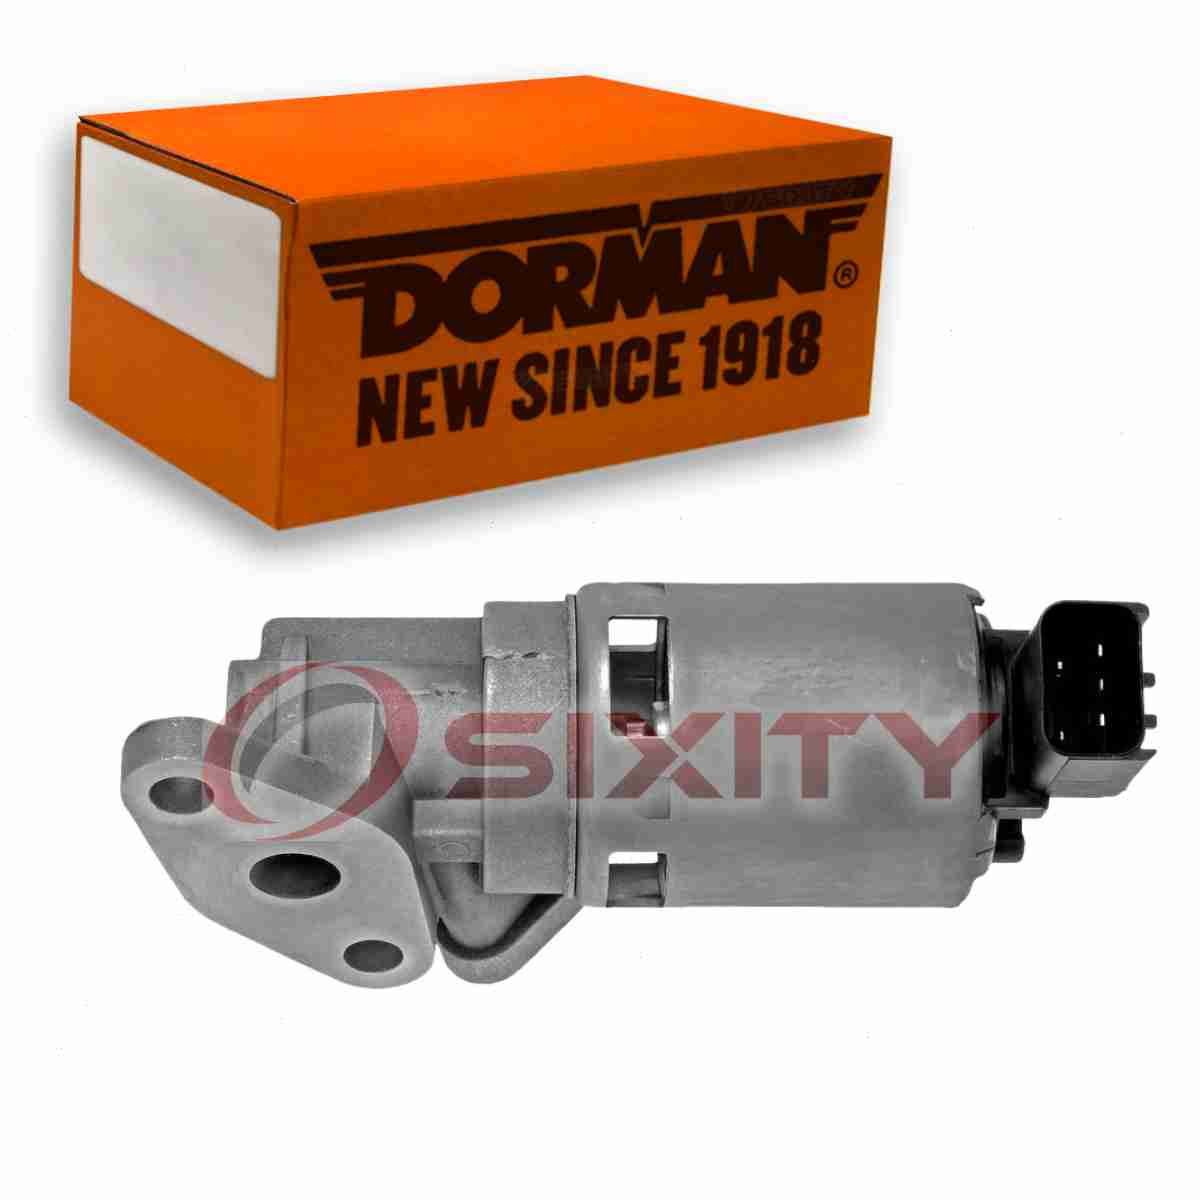 Dorman Egr Valve For Dodge Grand Caravan 2005 2007 3 3l 3 8l V6